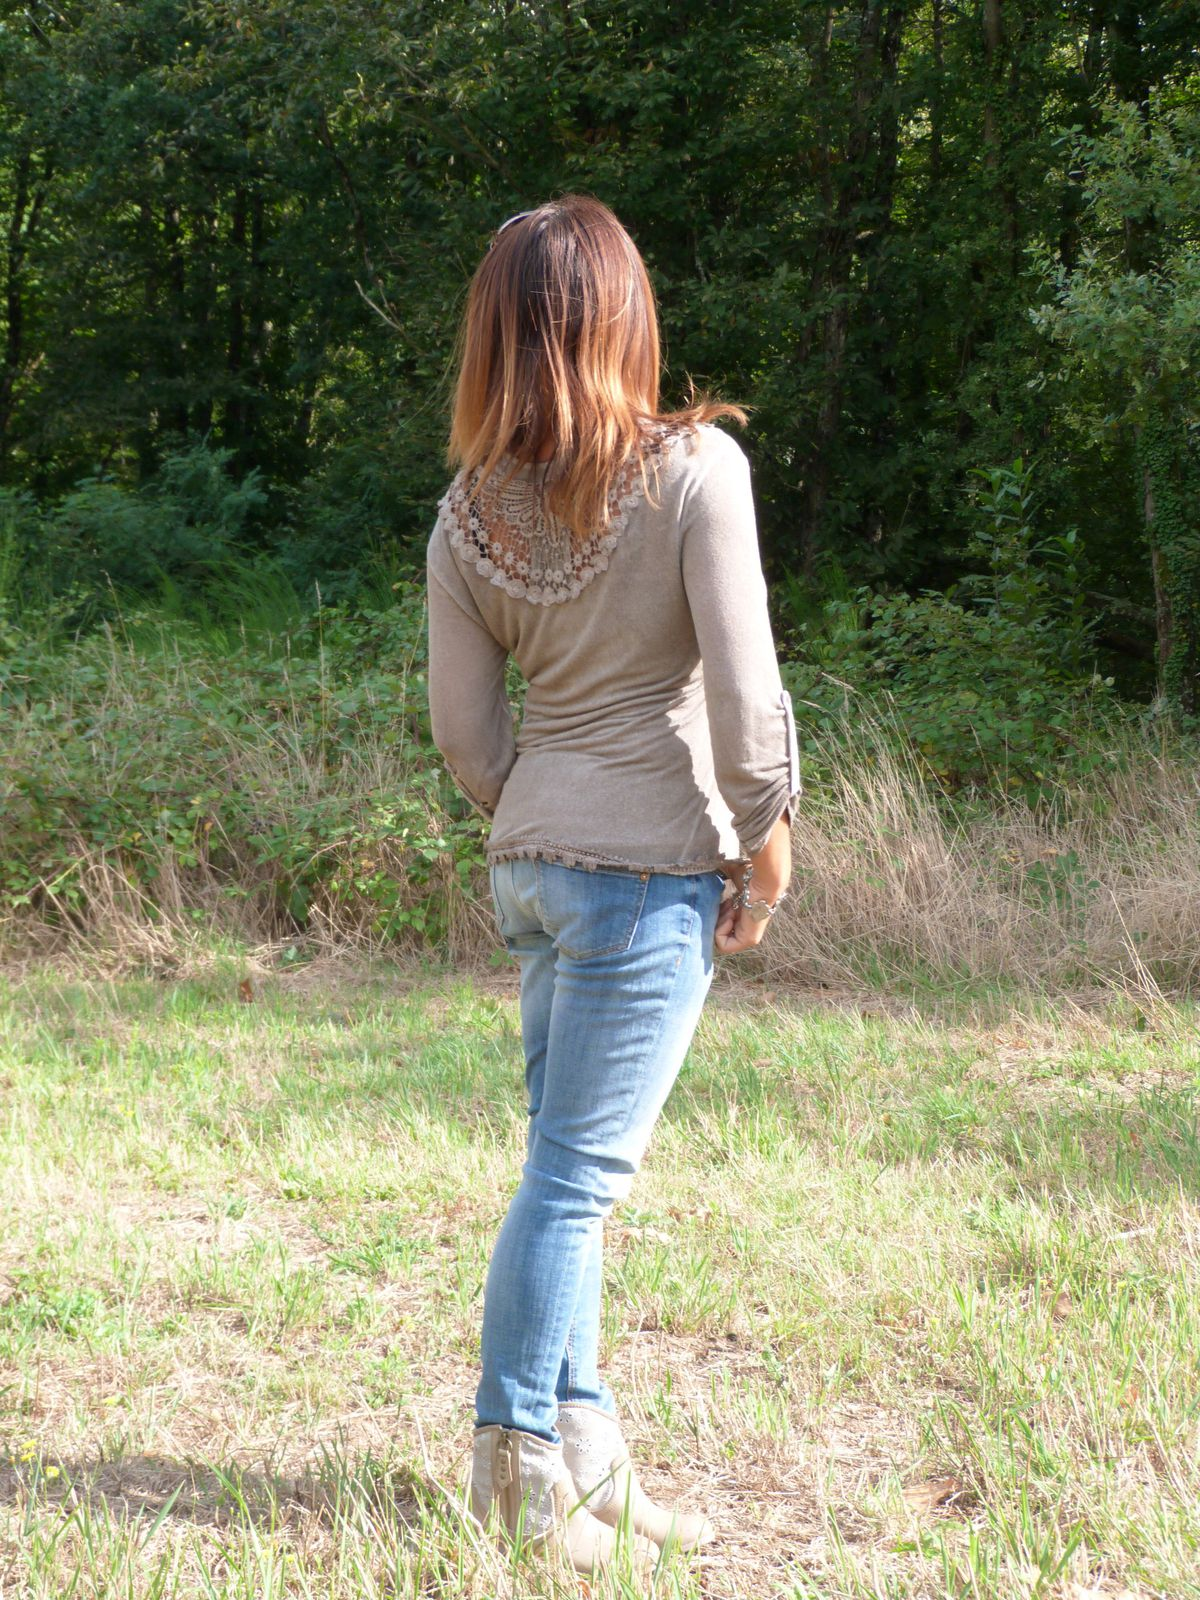 gilet 2 en 1 : FRUIT ROUGE  jeans : BERSHKA .   bottines : ZALANDO.